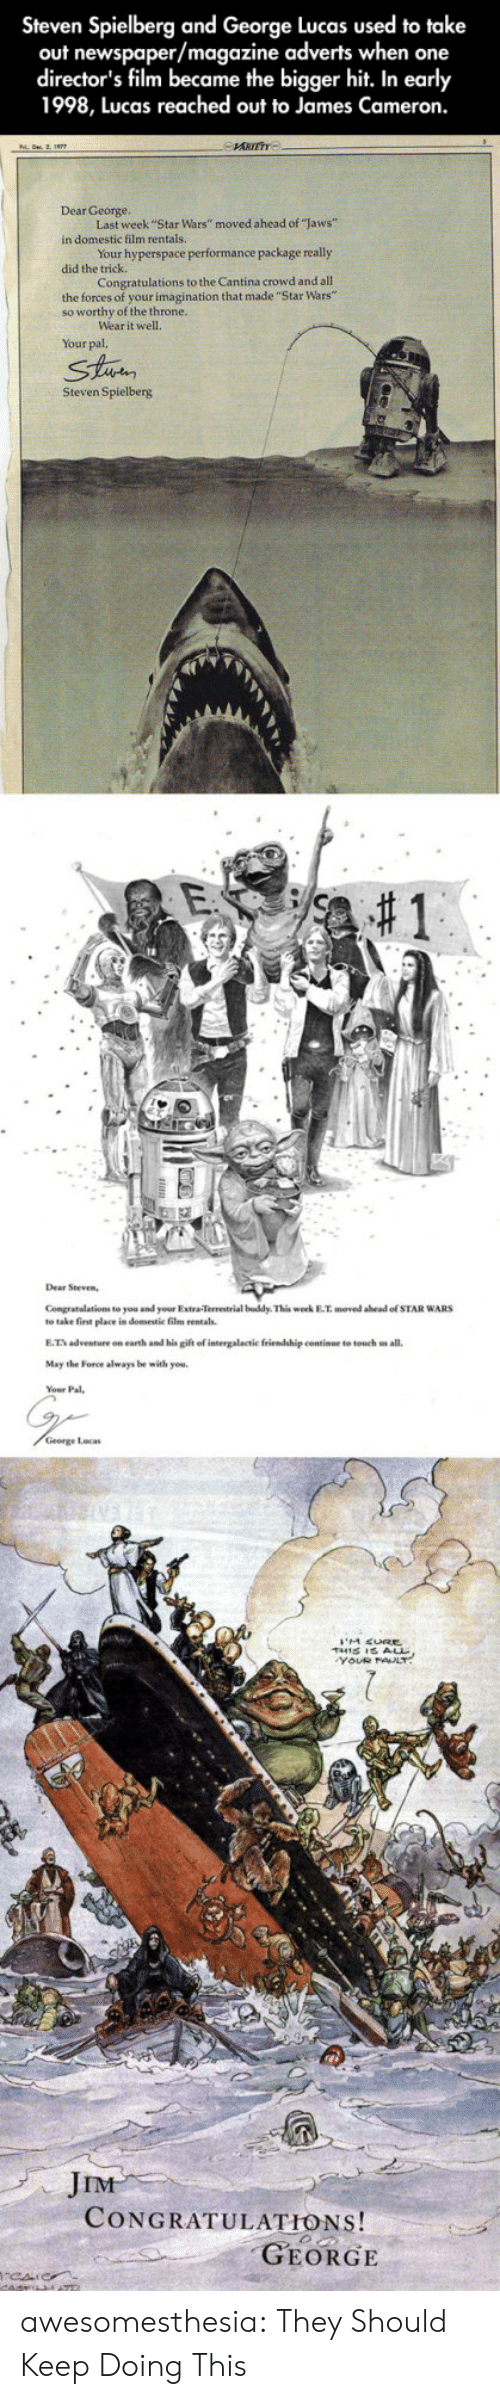 "Domestic: Steven Spielberg and George Lucas used to take  out newspaper/magazine adverts when one  director's film became the bigger hit. In early  1998, Lucas reached out to James Cameron.  Dear George.  Last week ""Star Wars"" moved ahead of ""laws""  in domestic film rentals  Your hyperspace performance package really  did the  Congratulations to the Cantina crowd and all  the forces of your imagination that made """"Star Wars""  so worthy of the throne.  ear it well.  Your pal,  Strin  Steven Spielberg  Congratalations to you and your Extra-Terrestrial buddy This week E.T. moved abead of STAR WARS  to take first elace in domestic film rentals.  E.T adventure on earth and his gift of intergalactic friendship continue to touch us all.  May the Force always be with you.  George Locas  JIM  CONGRATULATIONS!  GEORGE awesomesthesia:  They Should Keep Doing This"